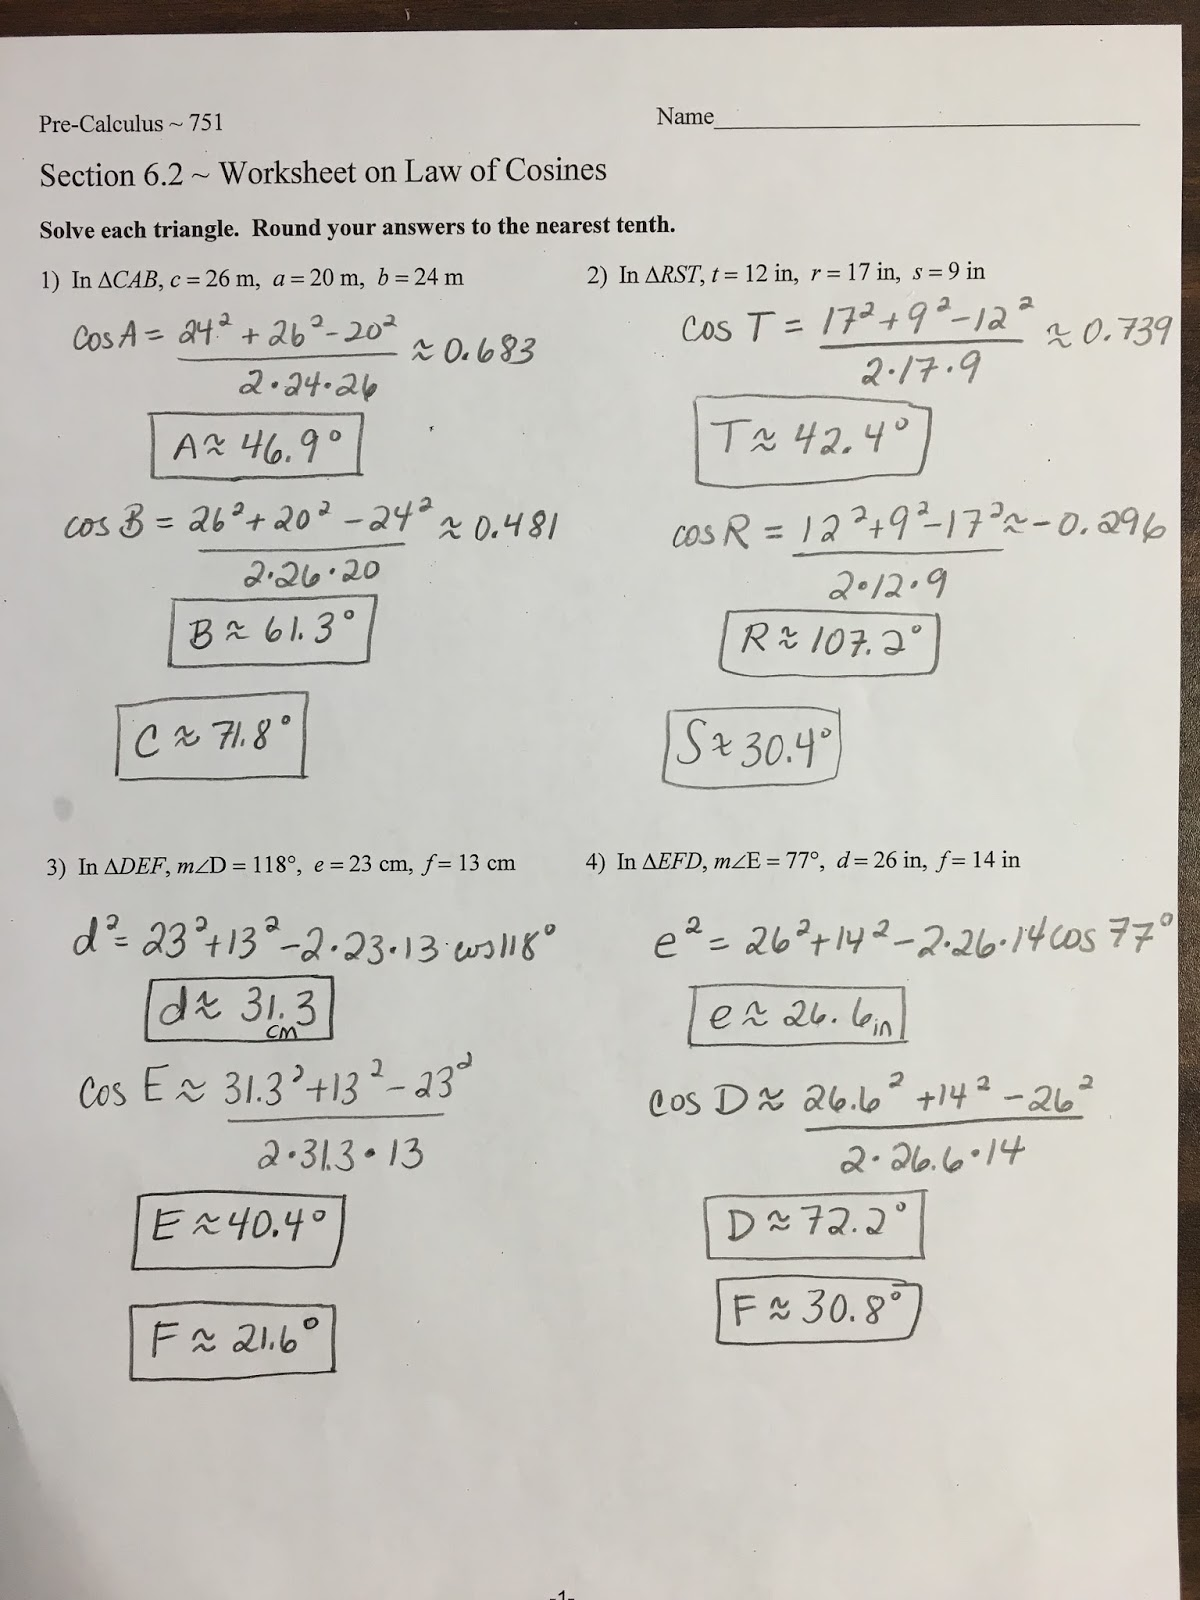 Precalculus Worksheets 9 Answers